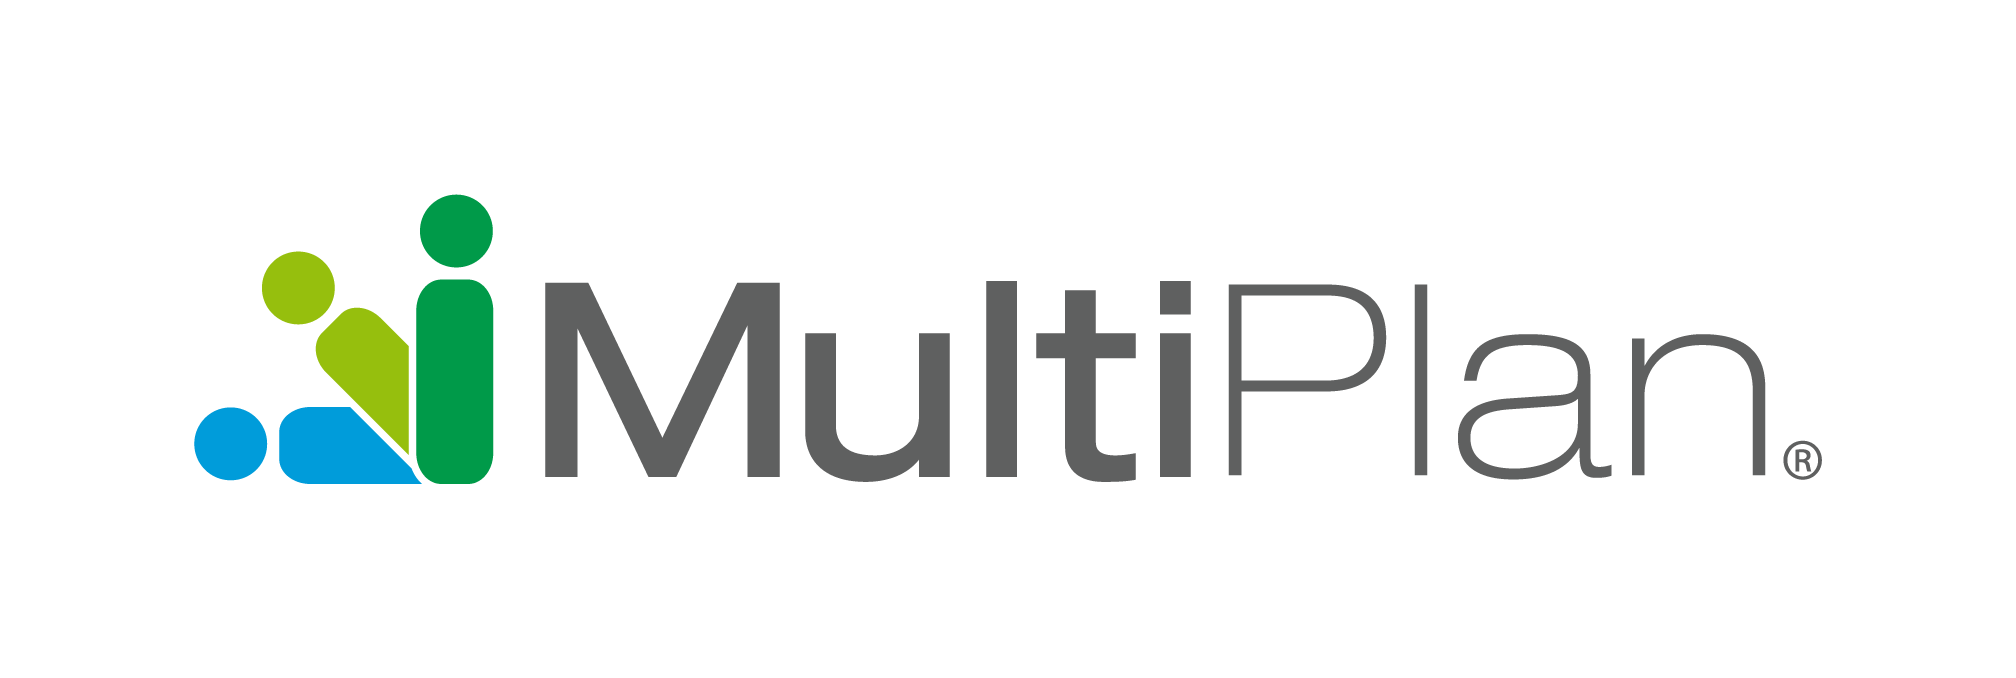 MultiPlan corporate logo